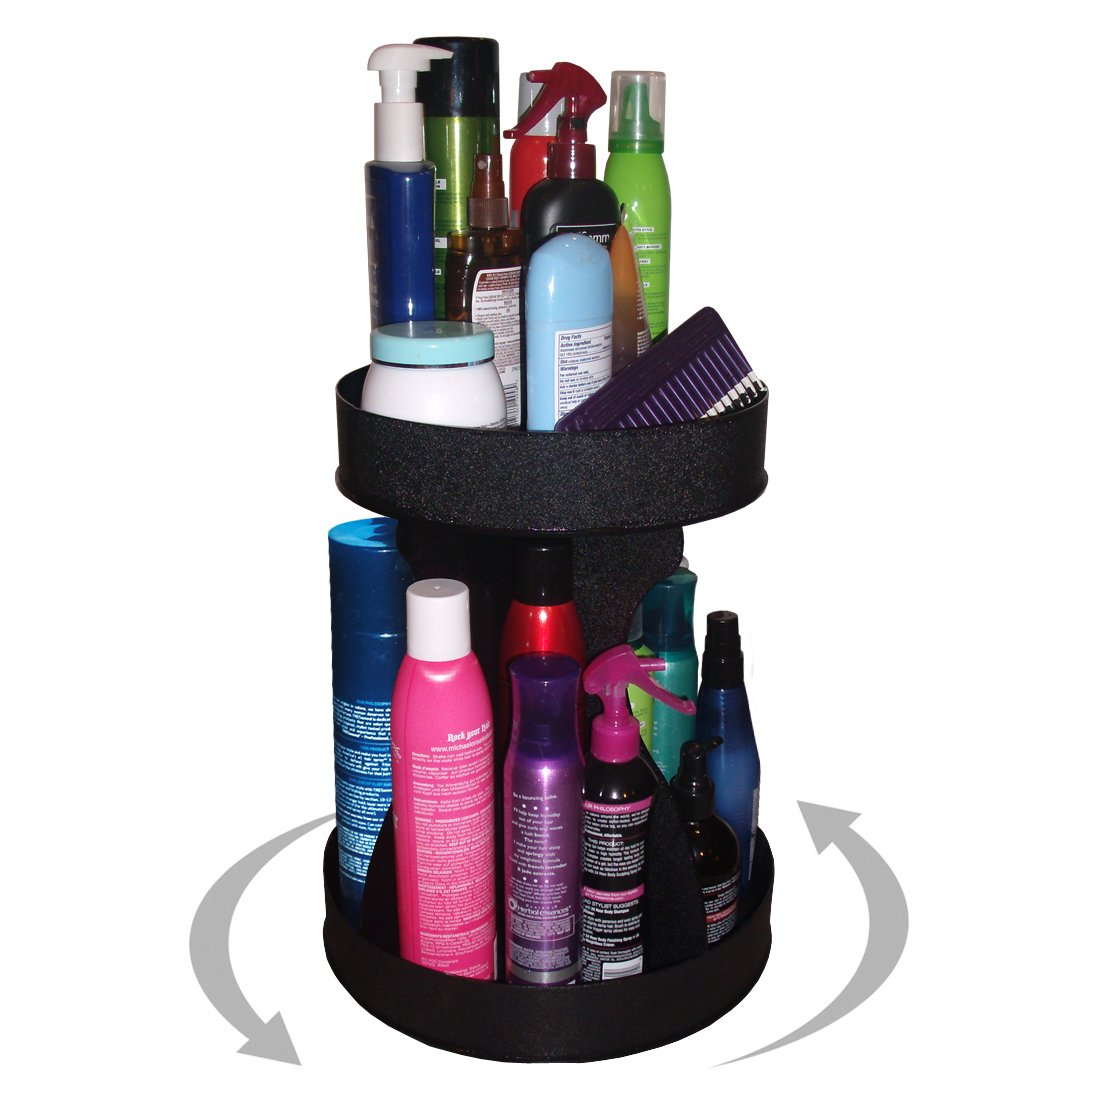 Cosmetic Spinner Organizer for Tall Bottles, Double Your Storage in Only 12'' of Counterspace. Made in the USA.